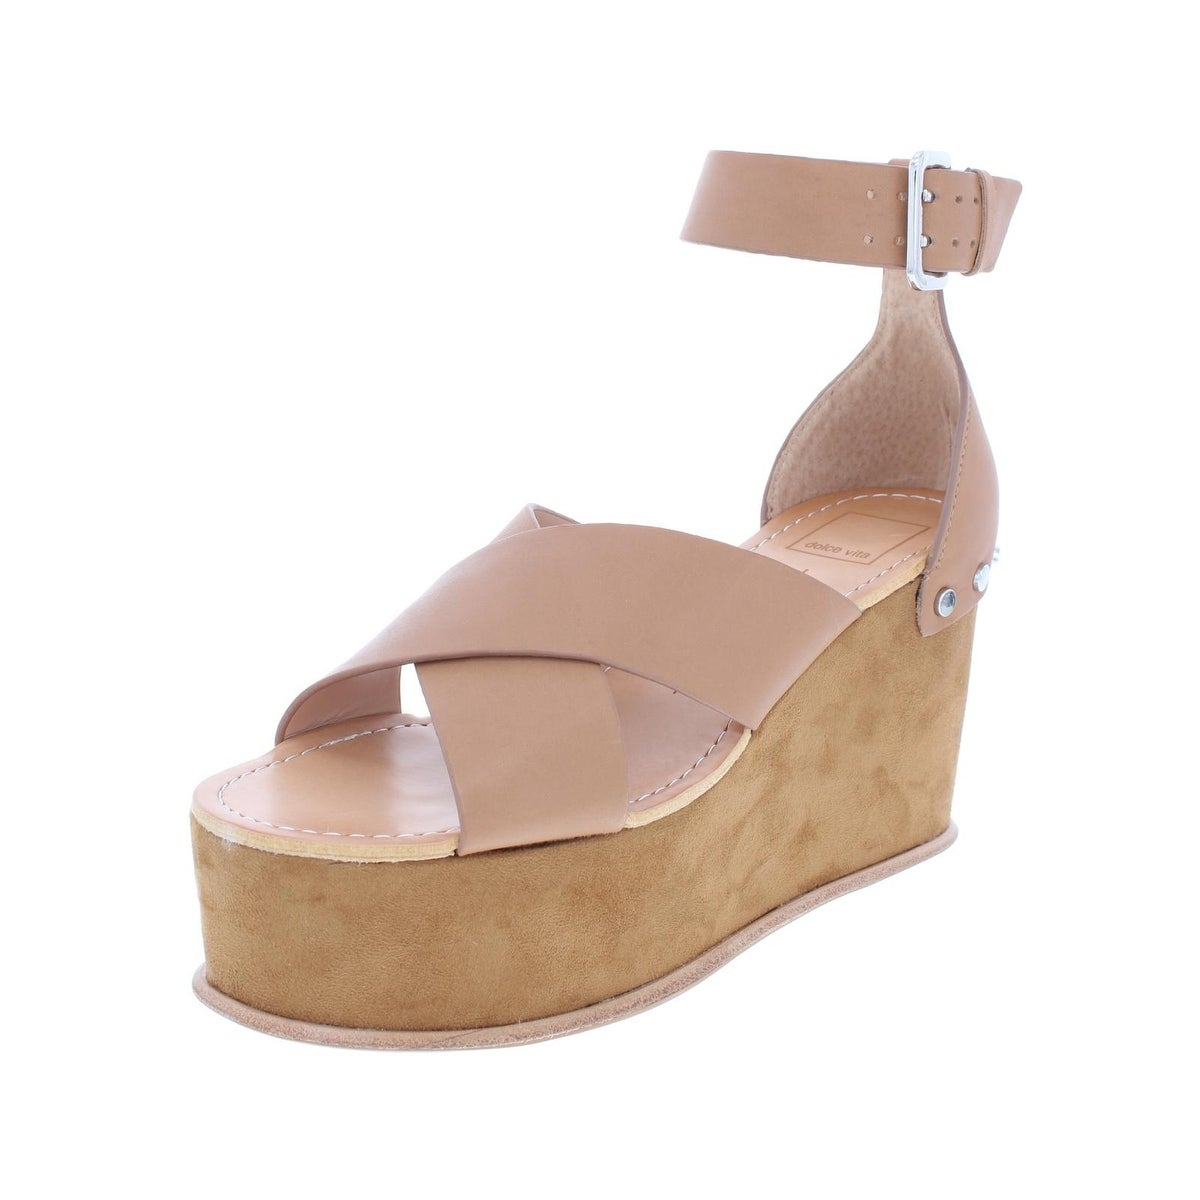 ce1881b85ed0 Buy Women s Wedges Online at Overstock